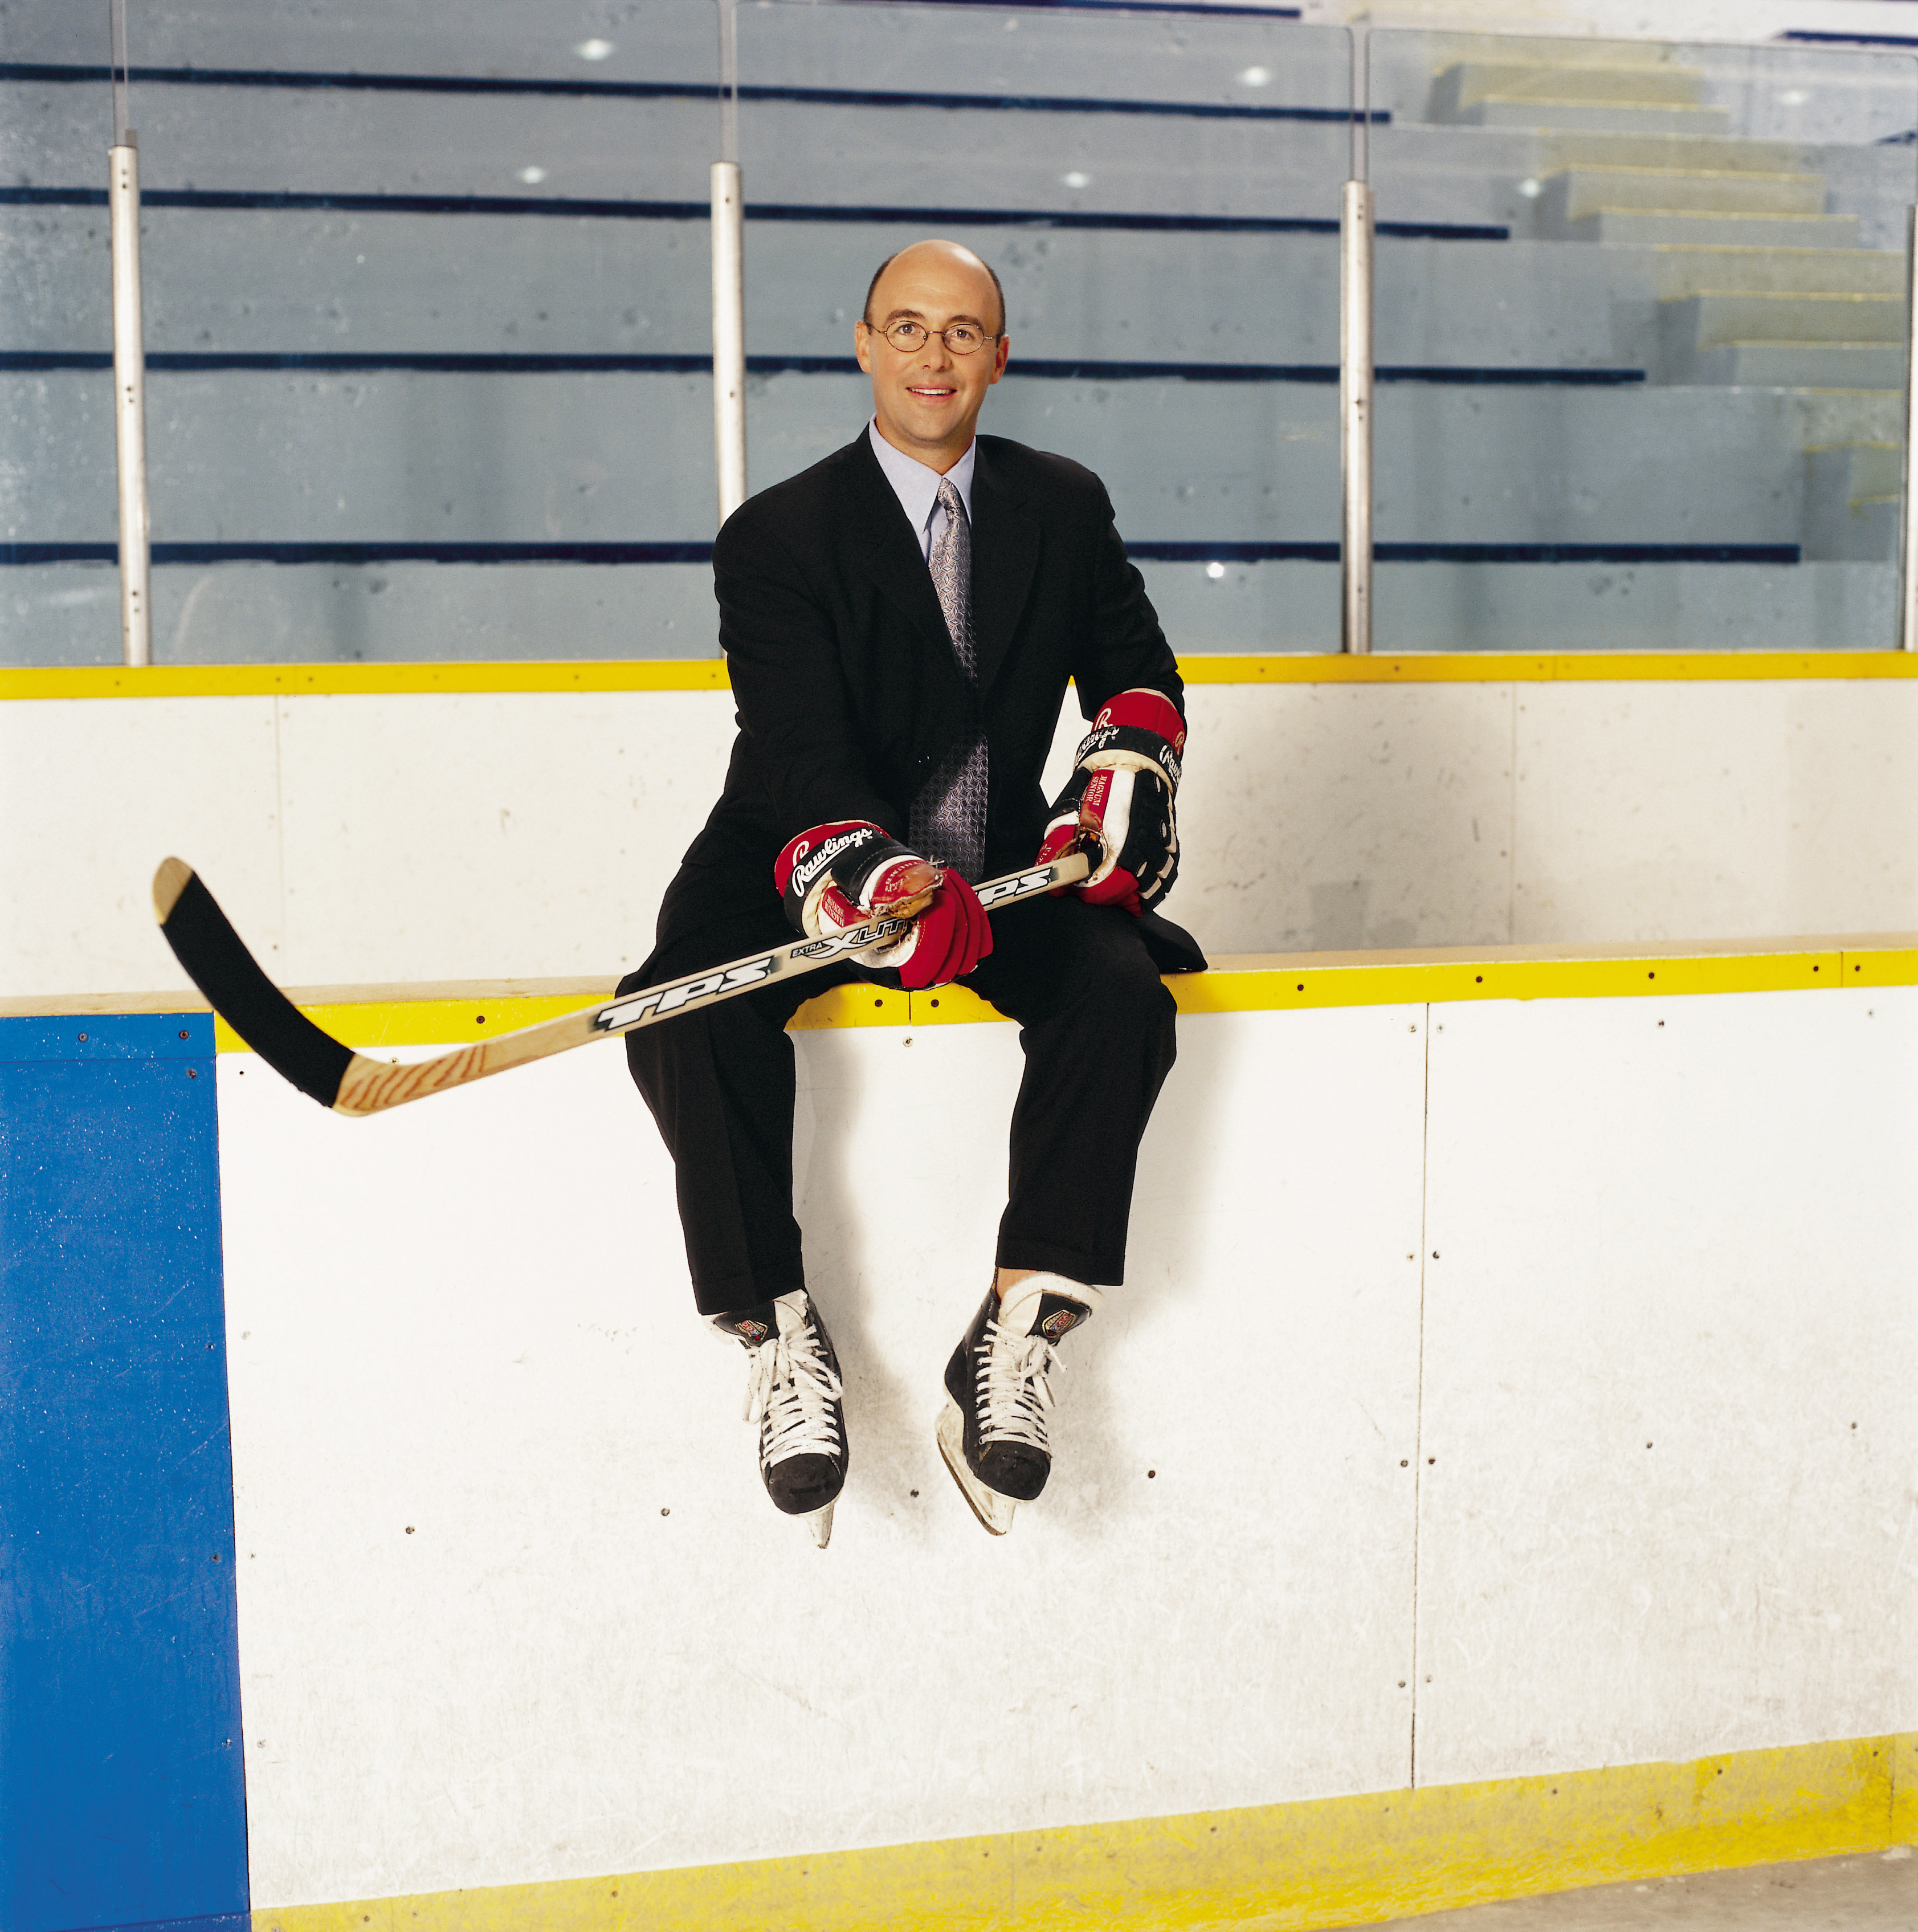 Punctual Pierre always gets to the rink with the perfect amount of time to get ready.